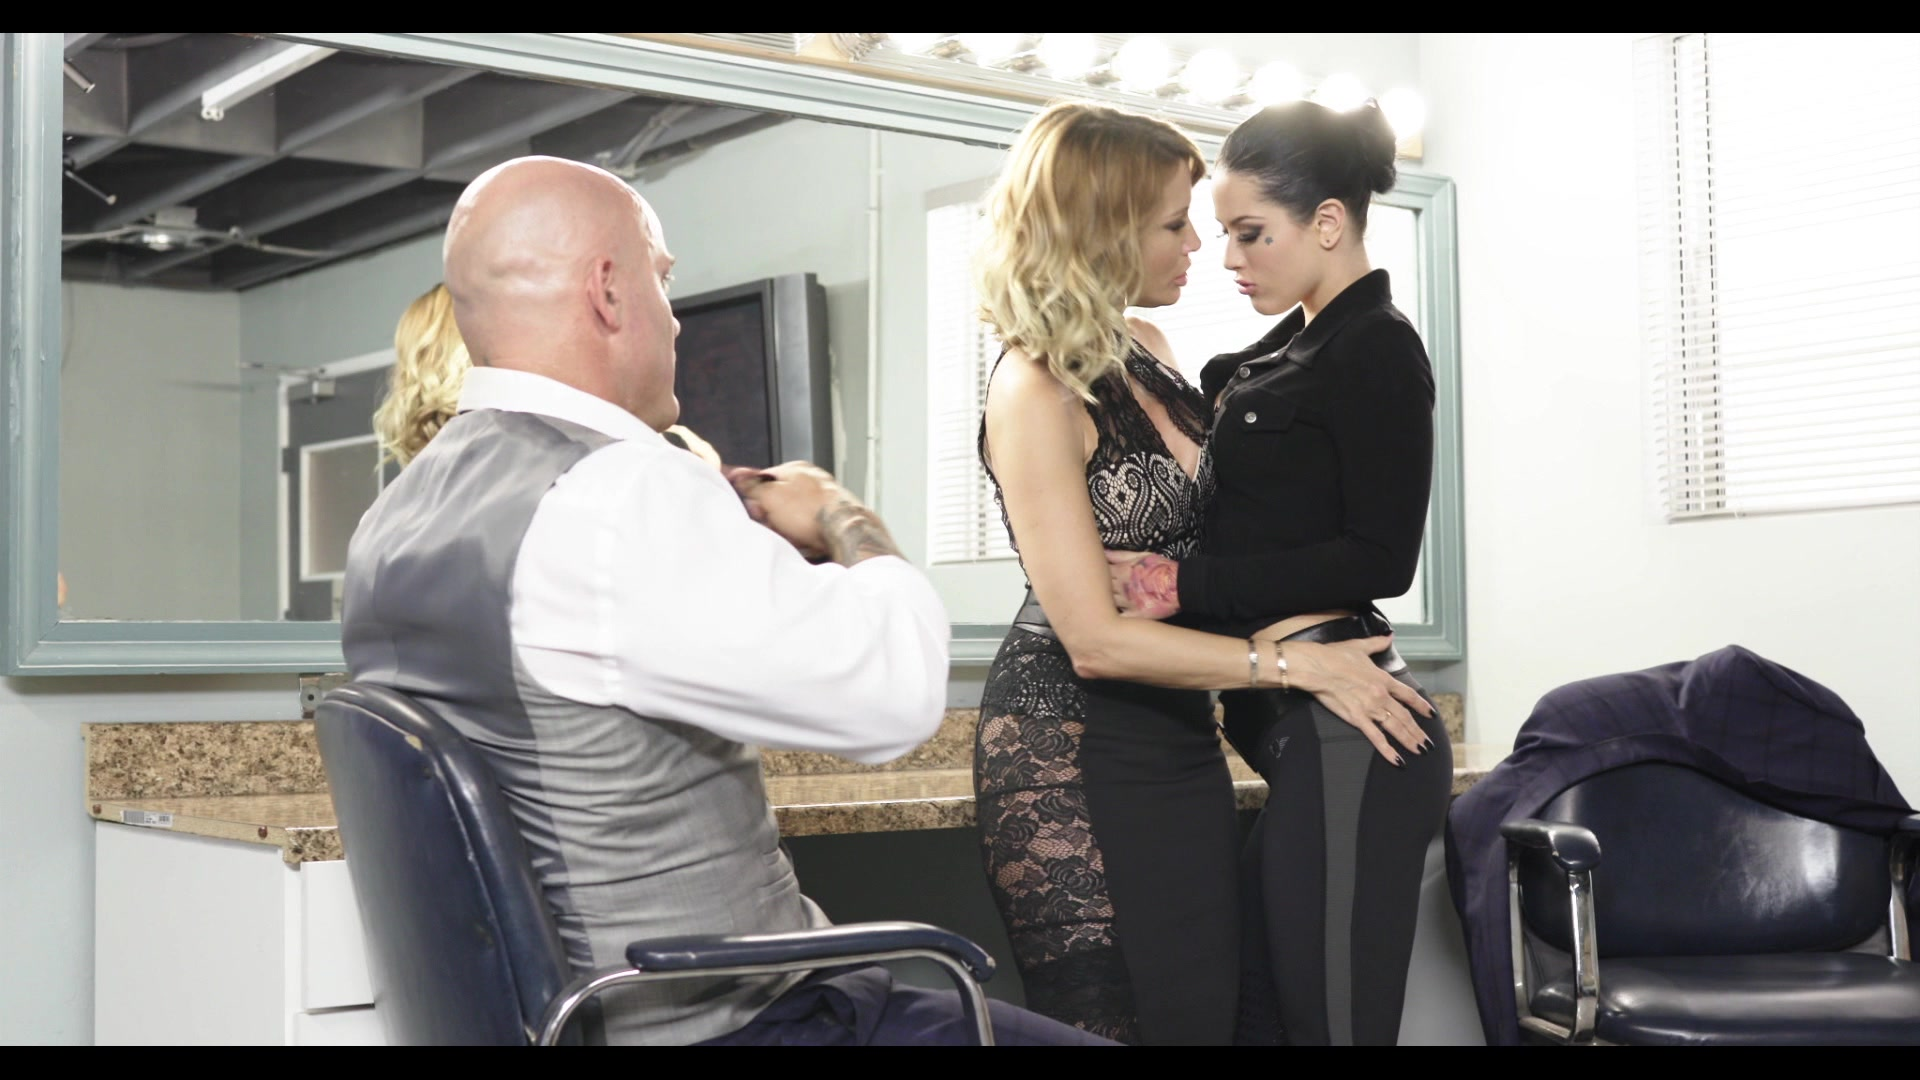 Scene with Jessica Drake, Derrick Pierce and Katrina Jade - image 9 out of 20